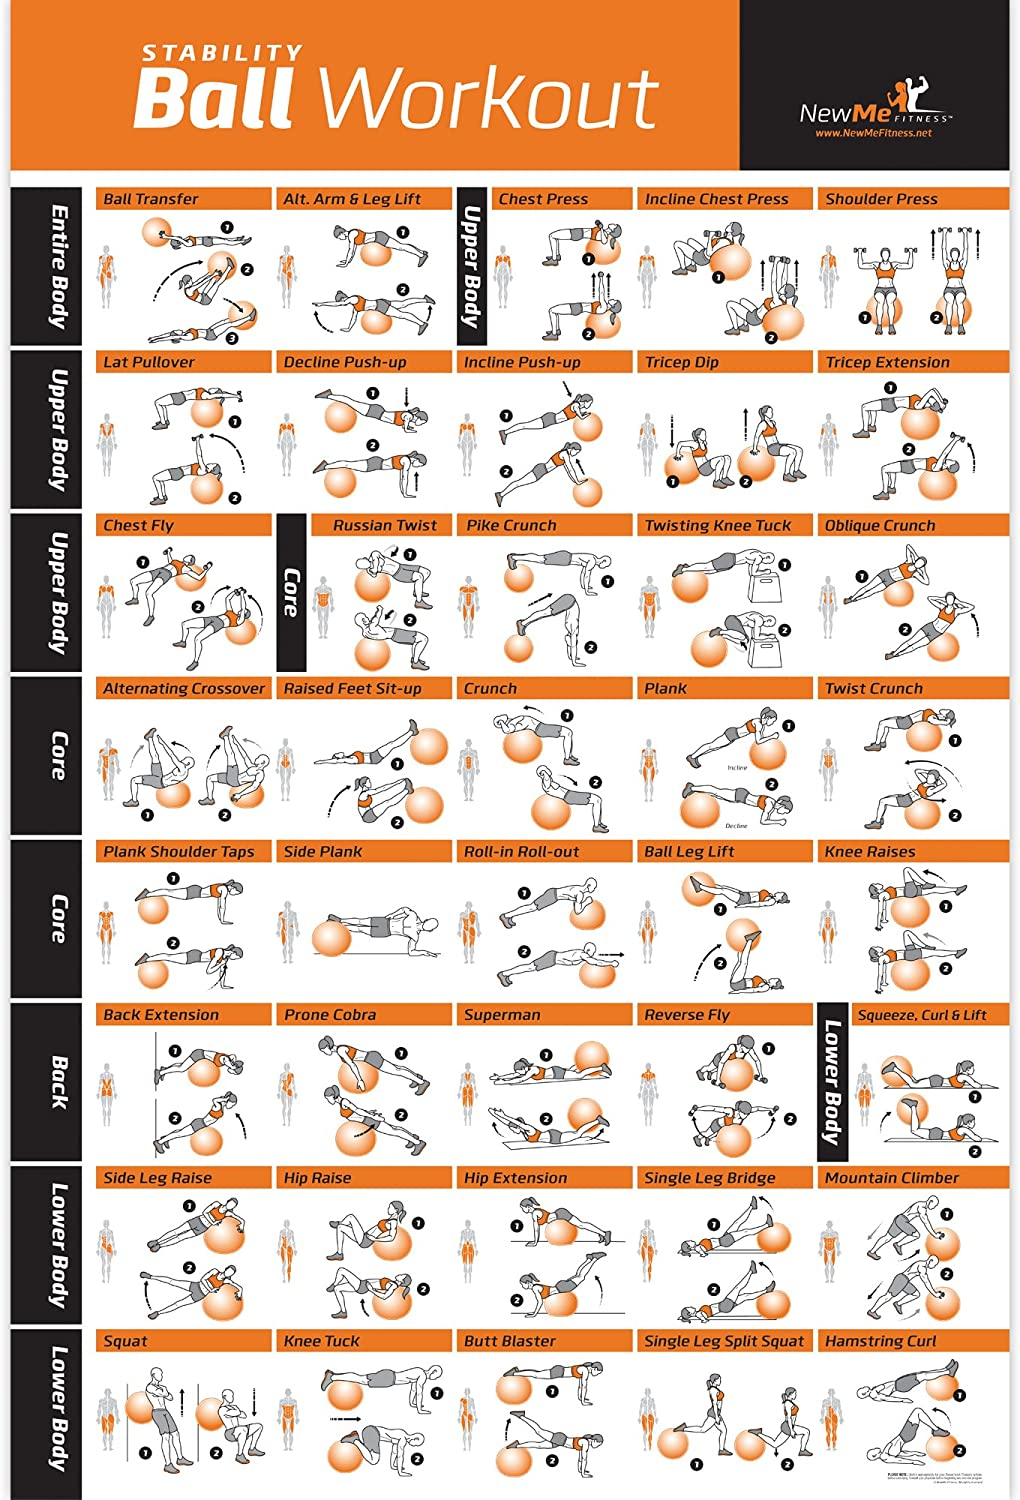 Exercise Ball Poster Laminated - Total Body Workout - Personal Trainer Fitness Program - Swiss, Yoga, Balance & Stability Ball Home Gym Poster - Tone Your Core, Abs, Legs Gluts & Upper Body